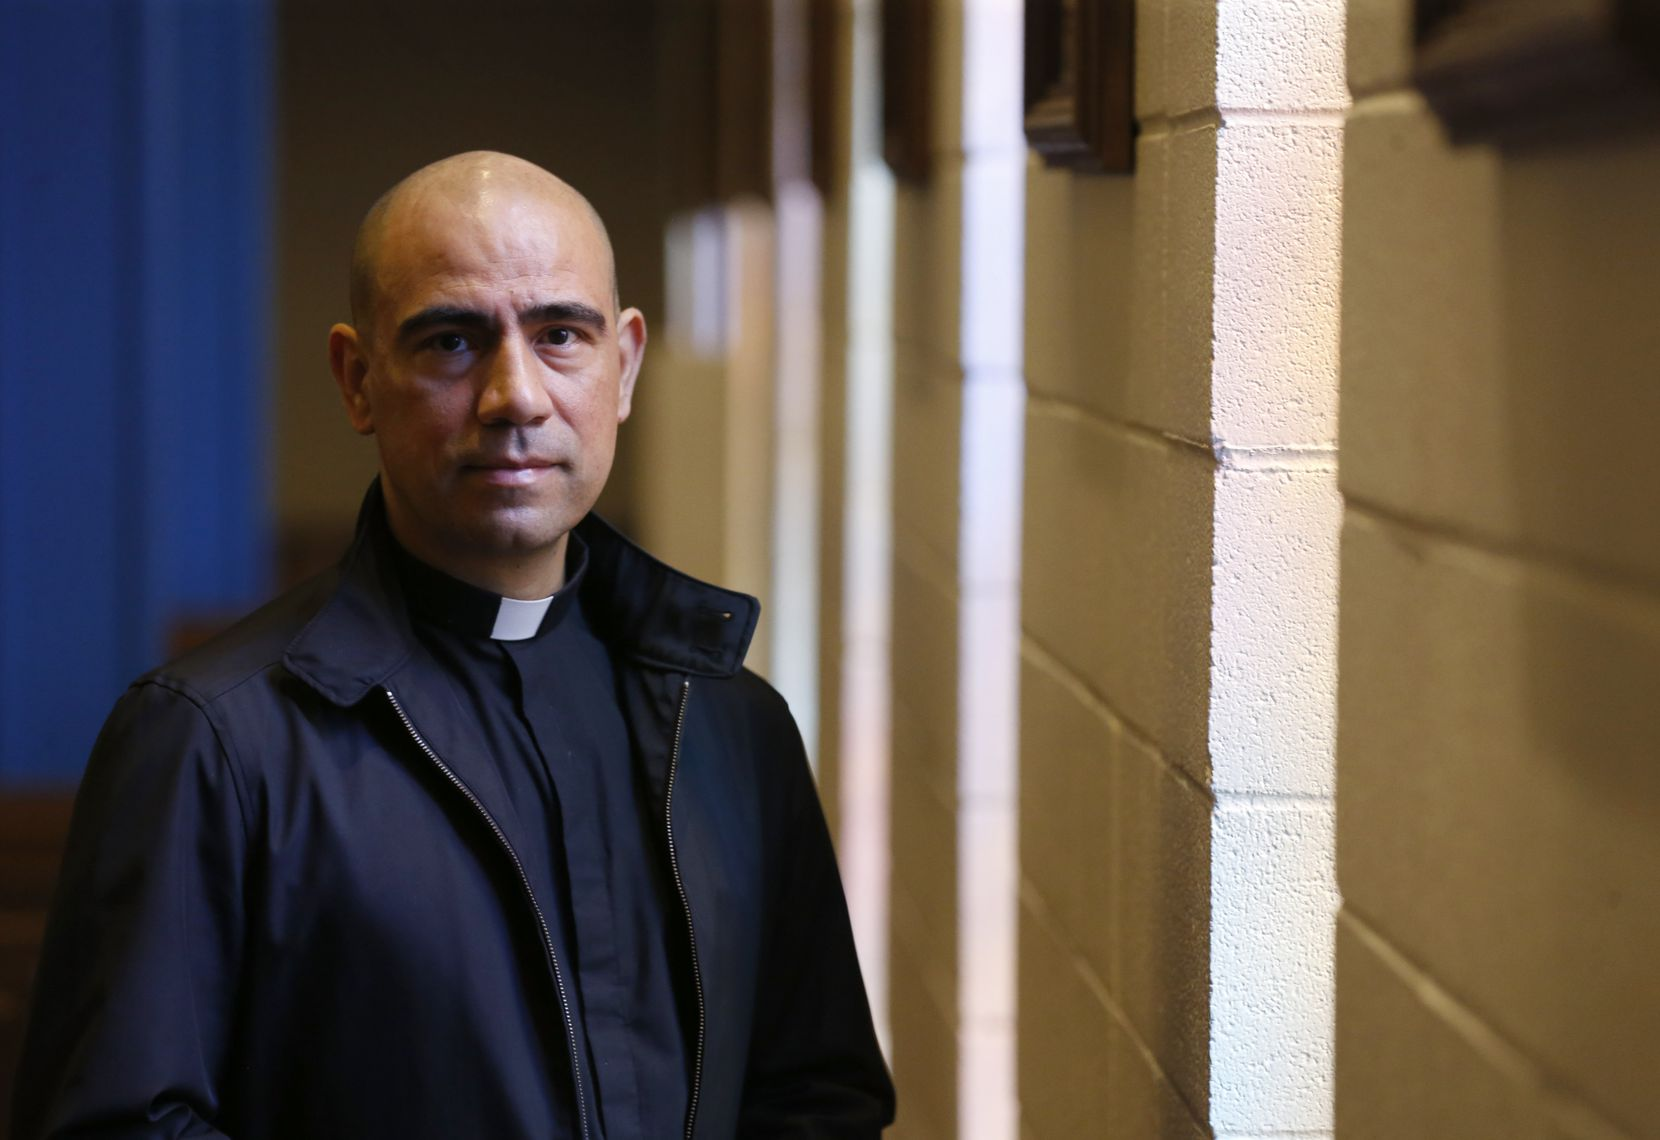 Jesús Belmontes was pastor of the San Juan Diego parish in northwest Dallas for 12 years. While there, he led a crusade to help the area's most vulnerable immigrants.